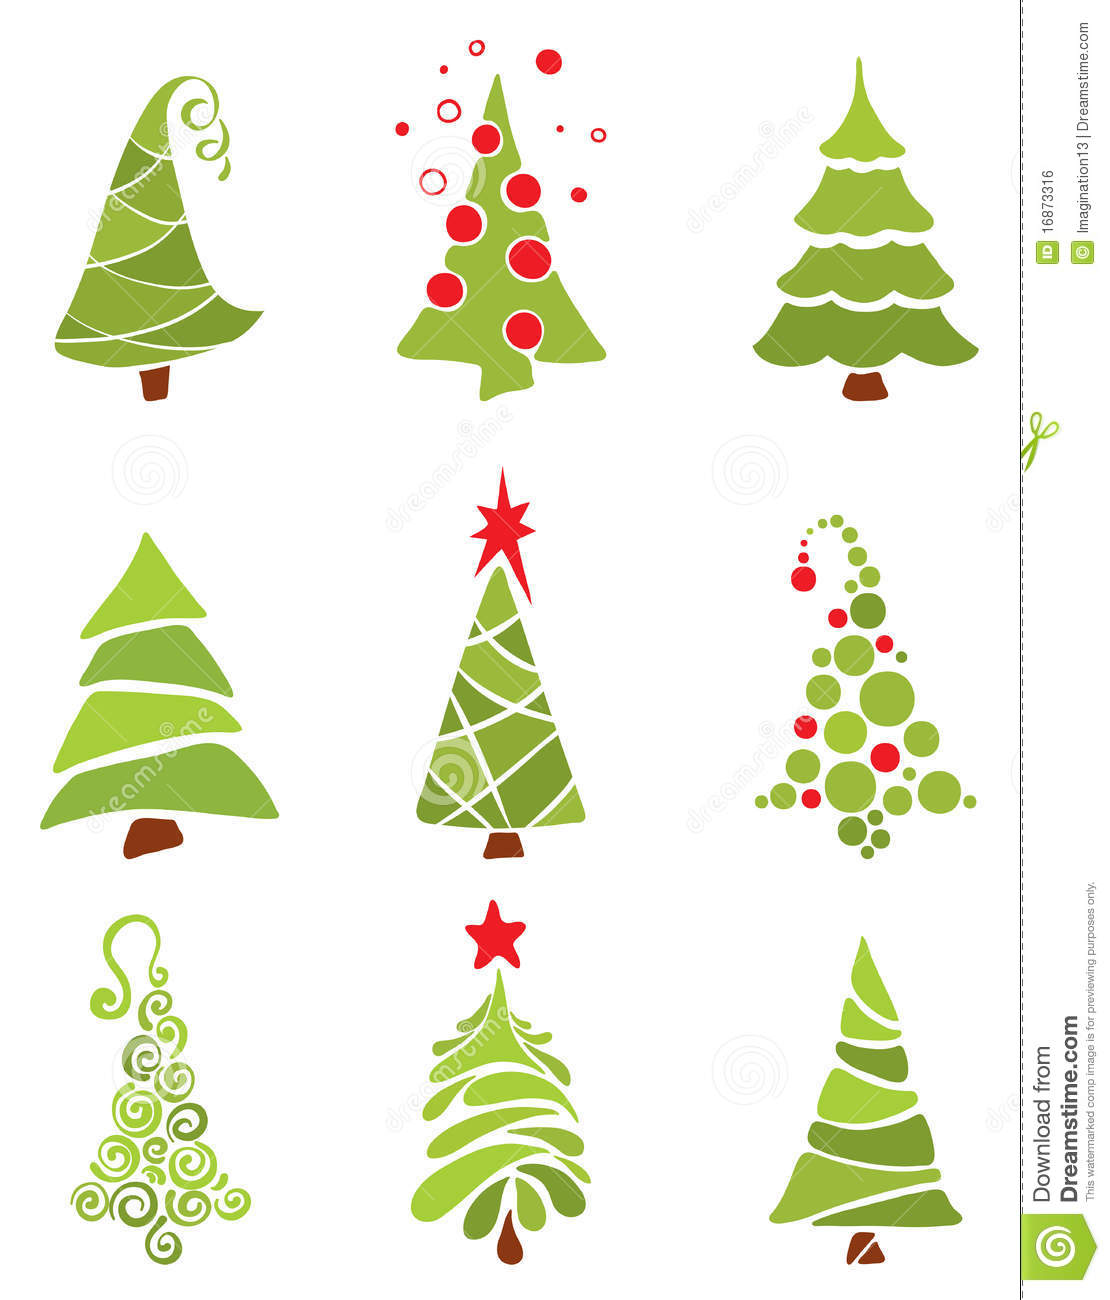 A Collection Of Modern Trees Stock Vector - Image: 16873316